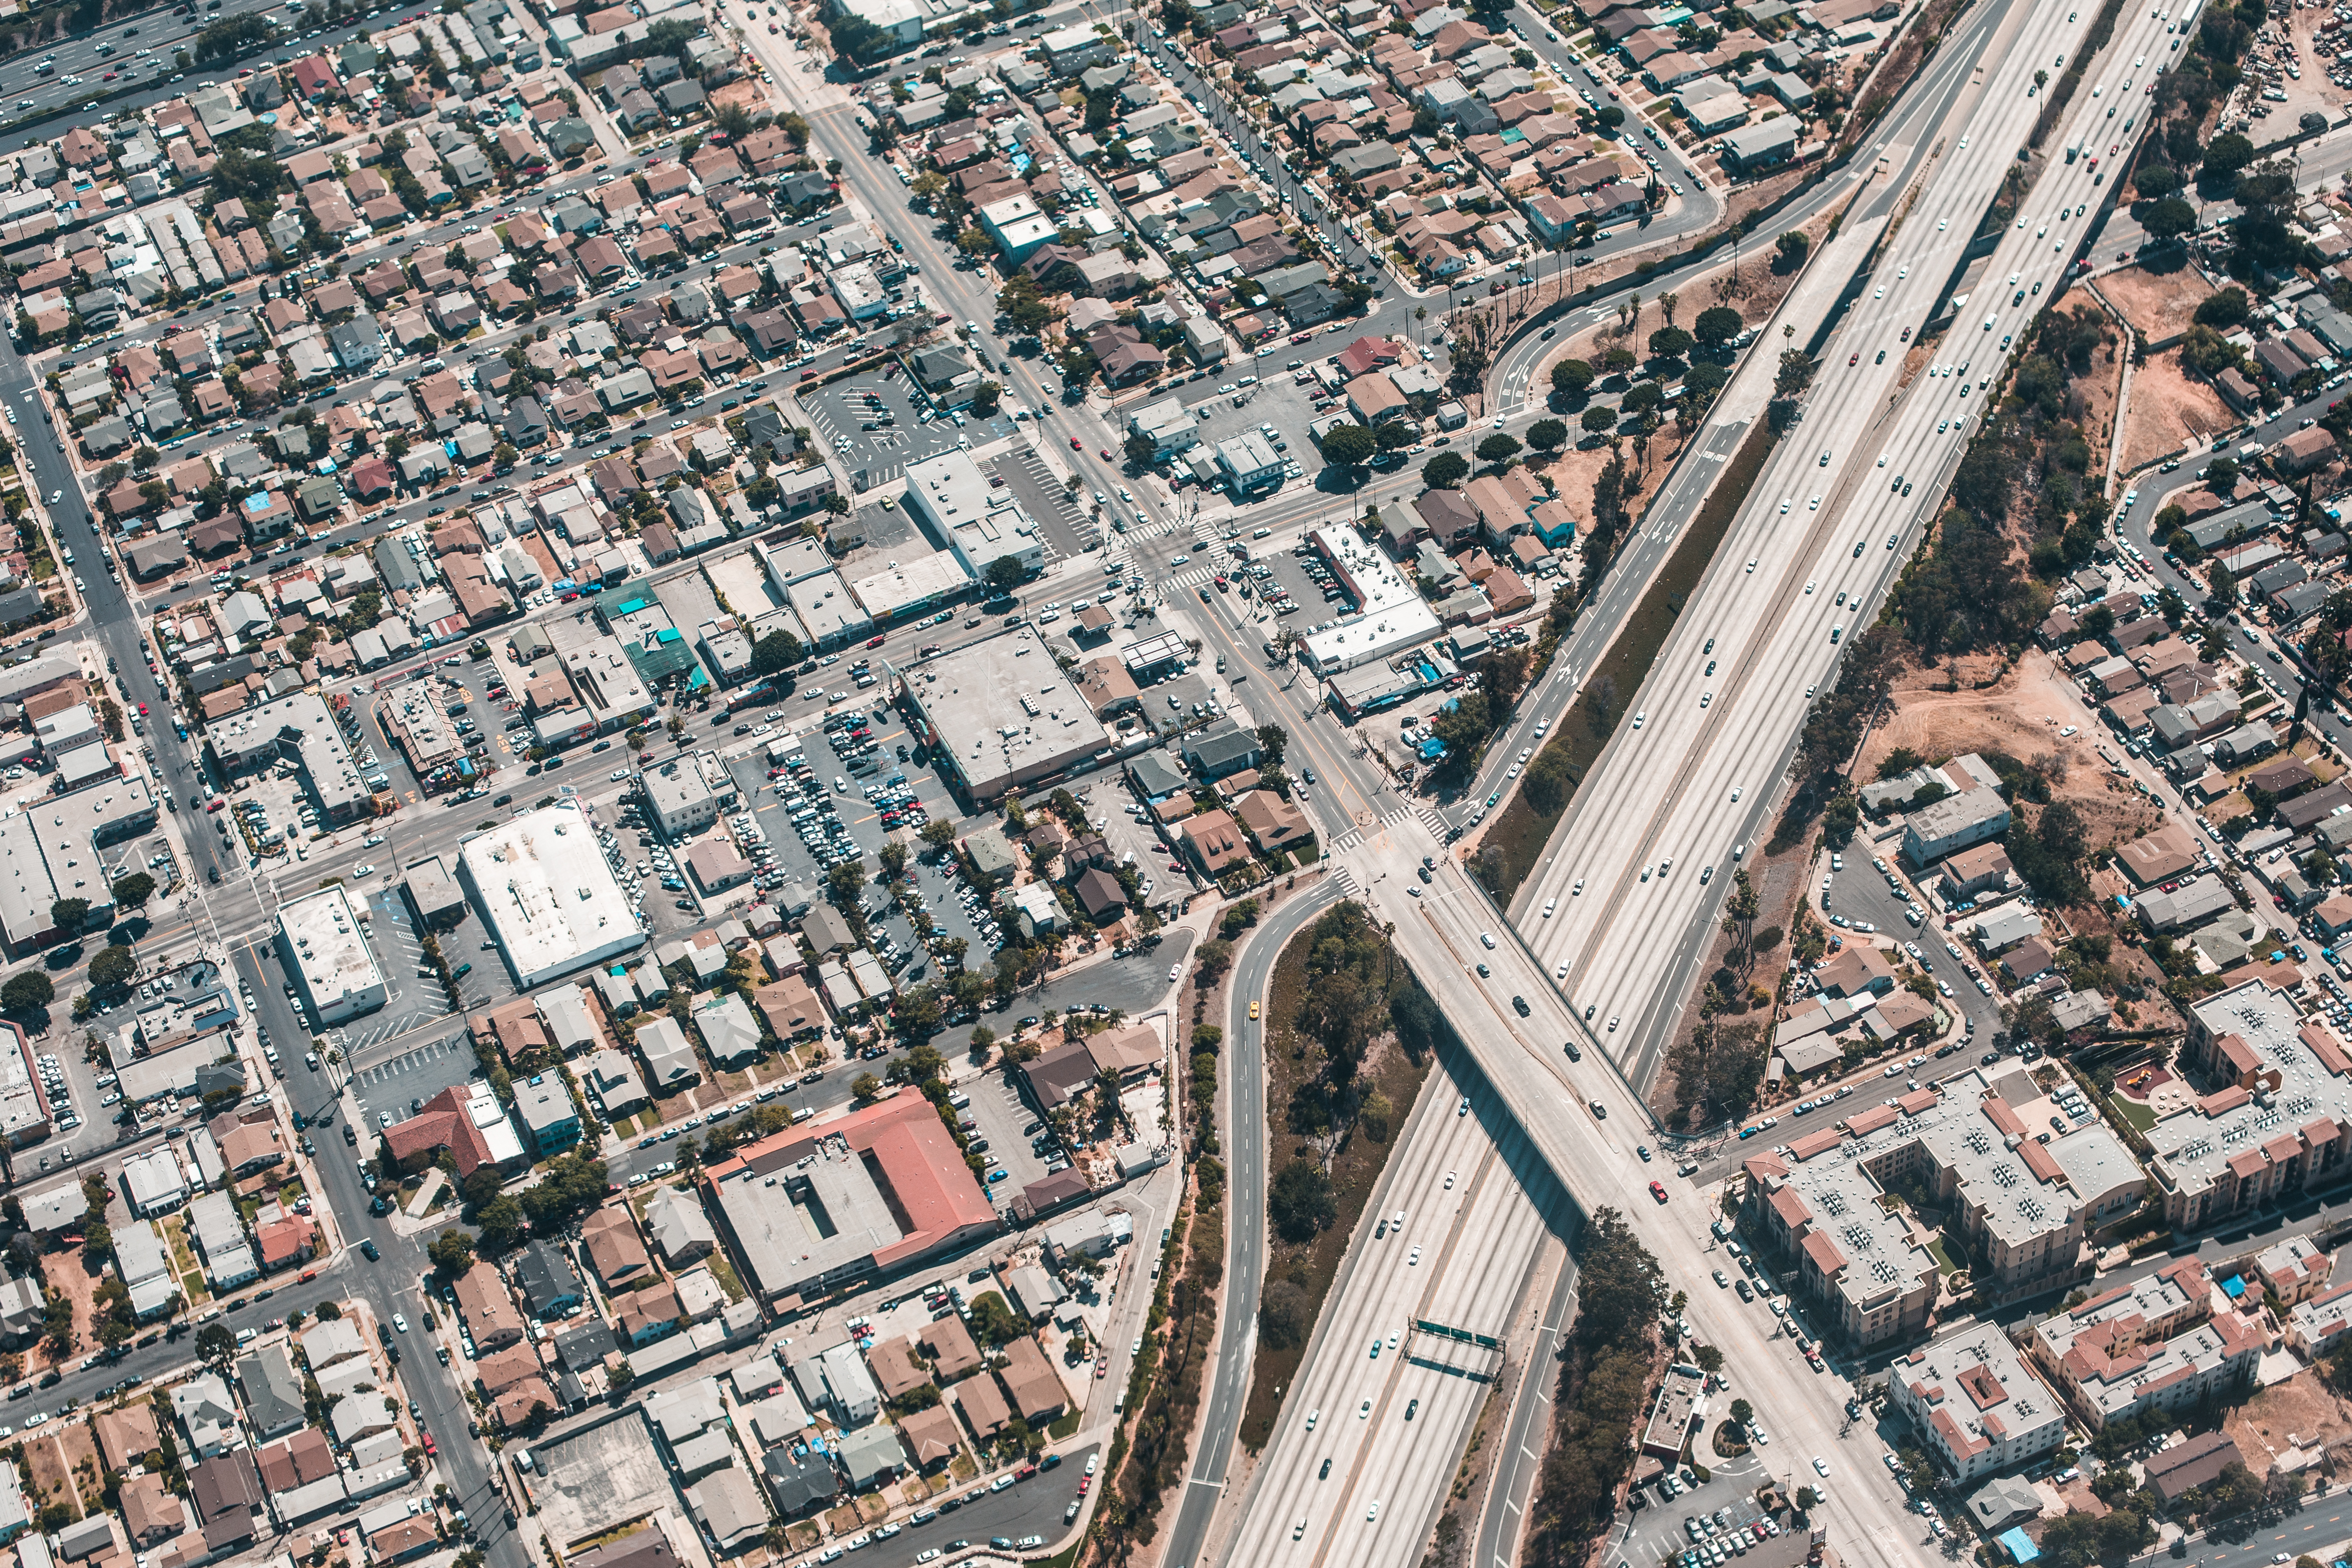 los-angeles-streets-from-above-aerial-shot-picjumbo-com